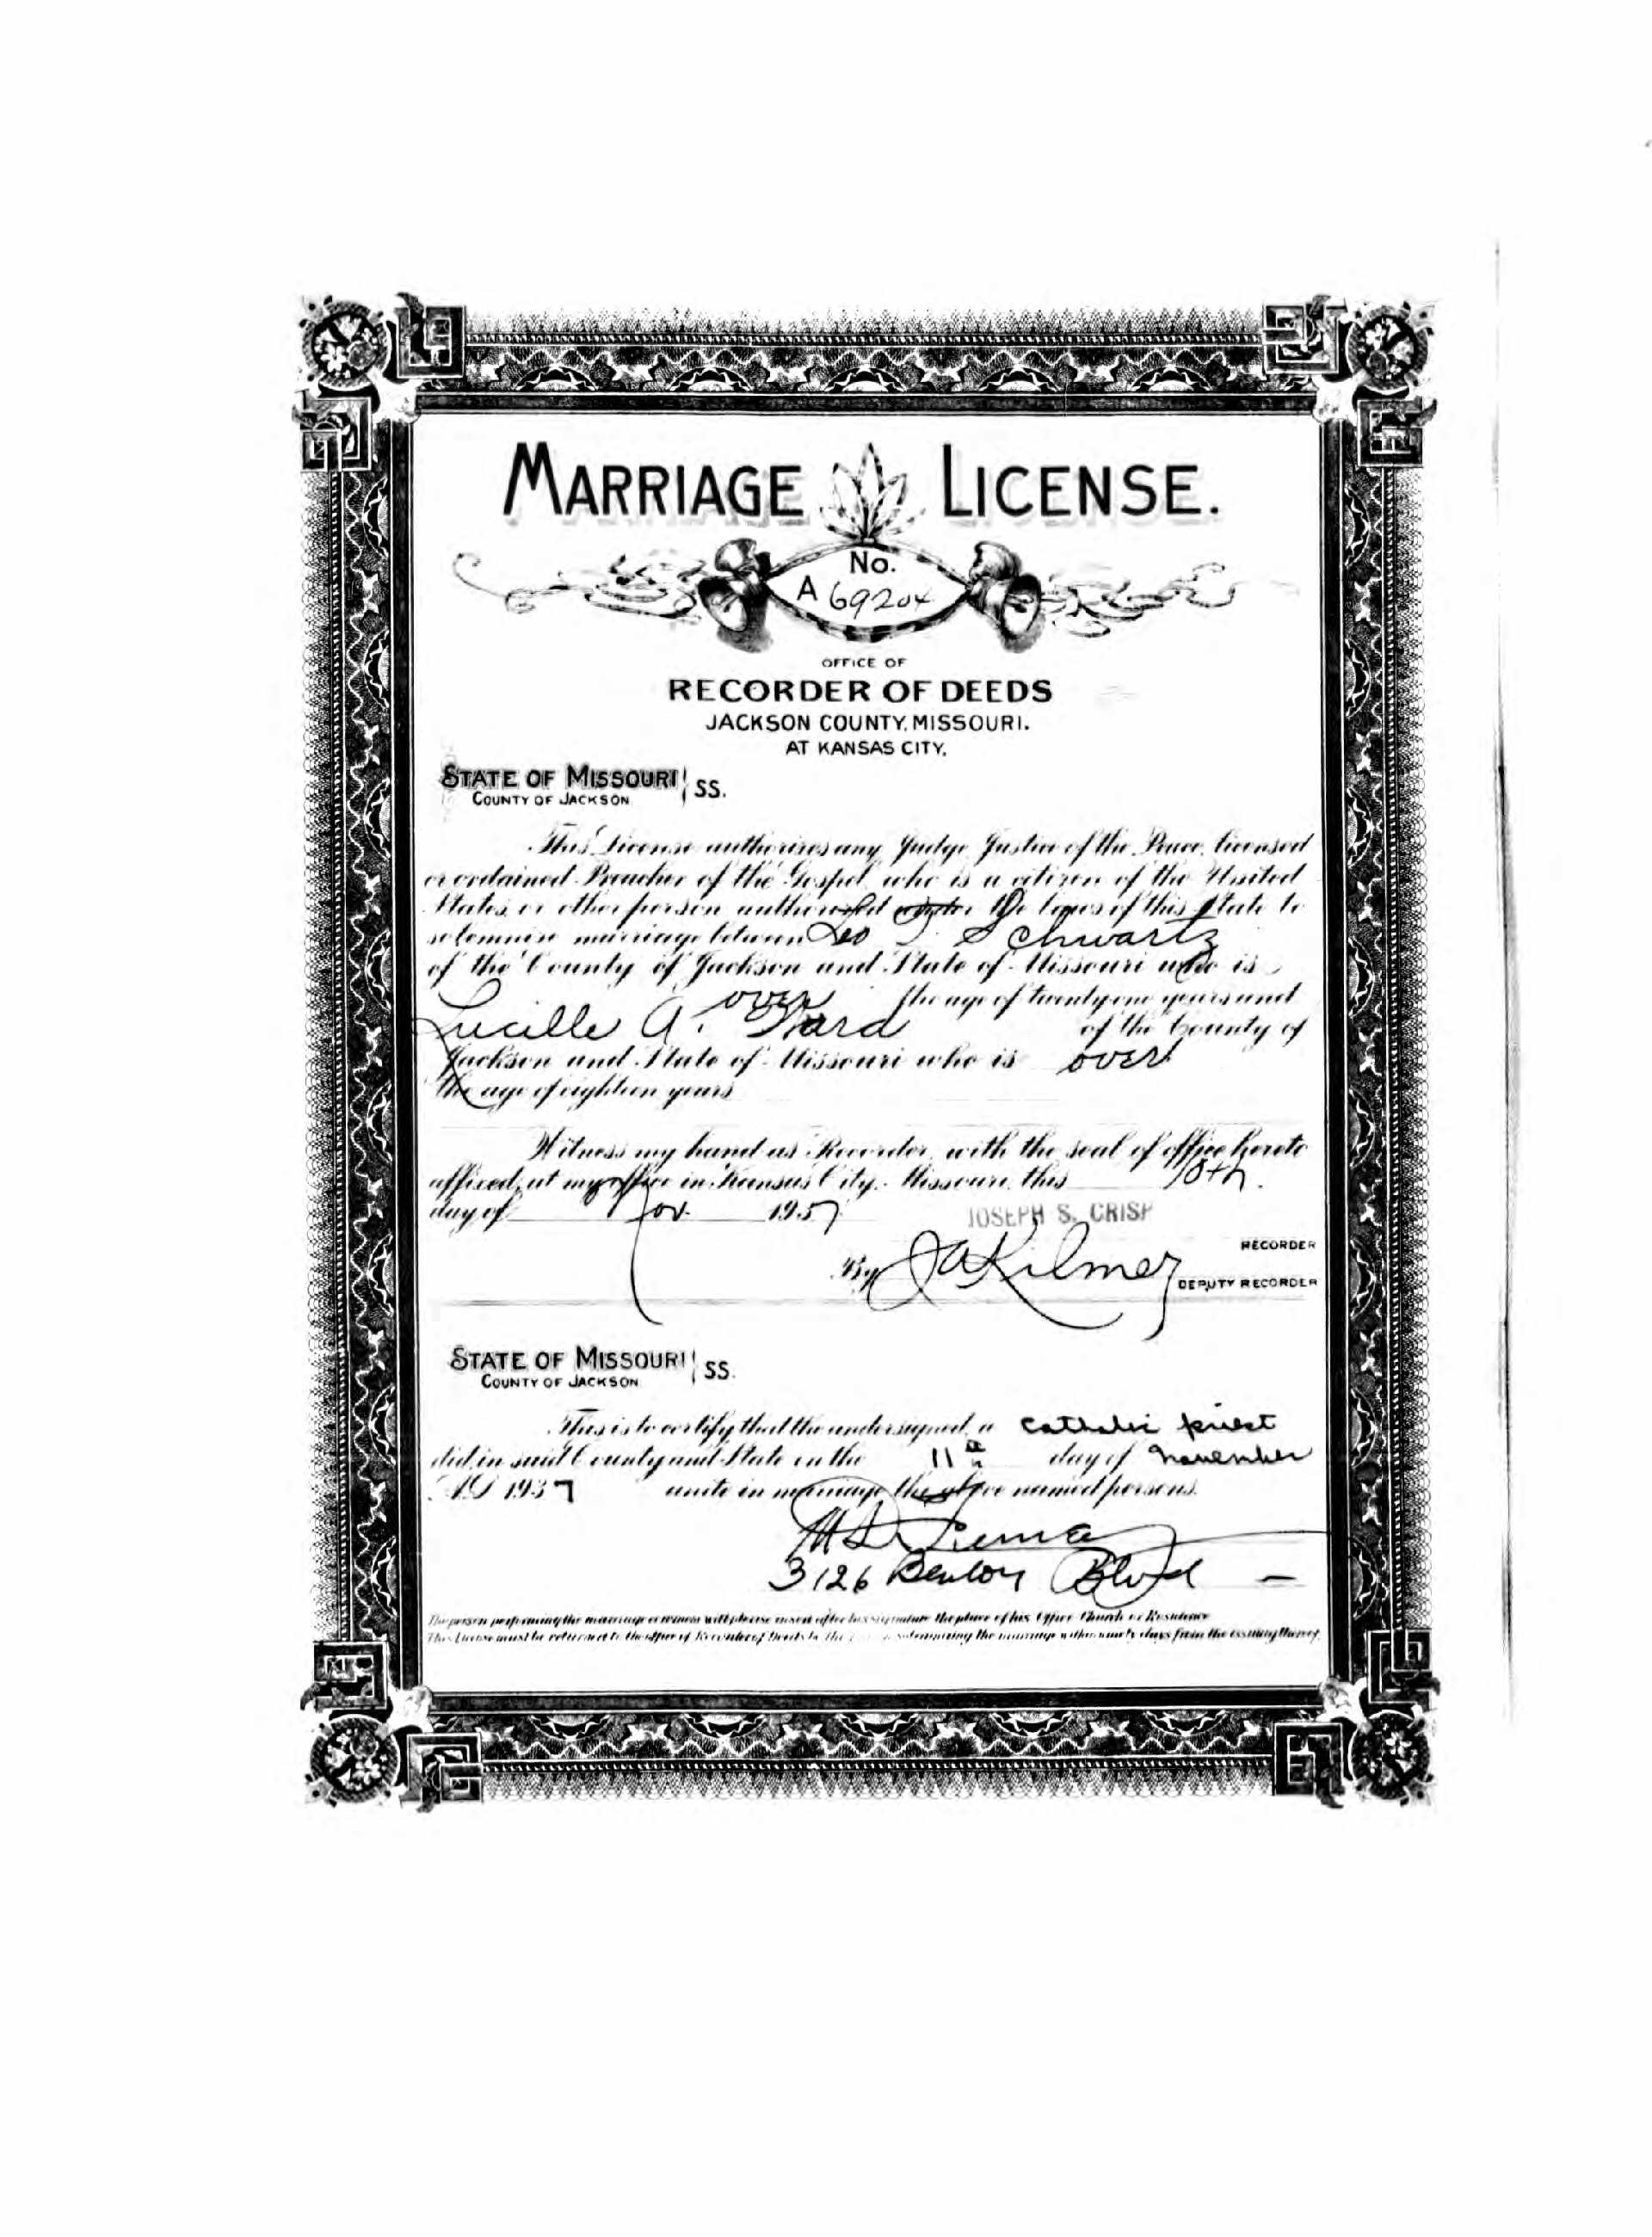 Leo t schwartz 1902 1988 find a grave memorial the certificate of leos marriage to lucille a ward on november 11 1937 in jackson county missouri aiddatafo Choice Image